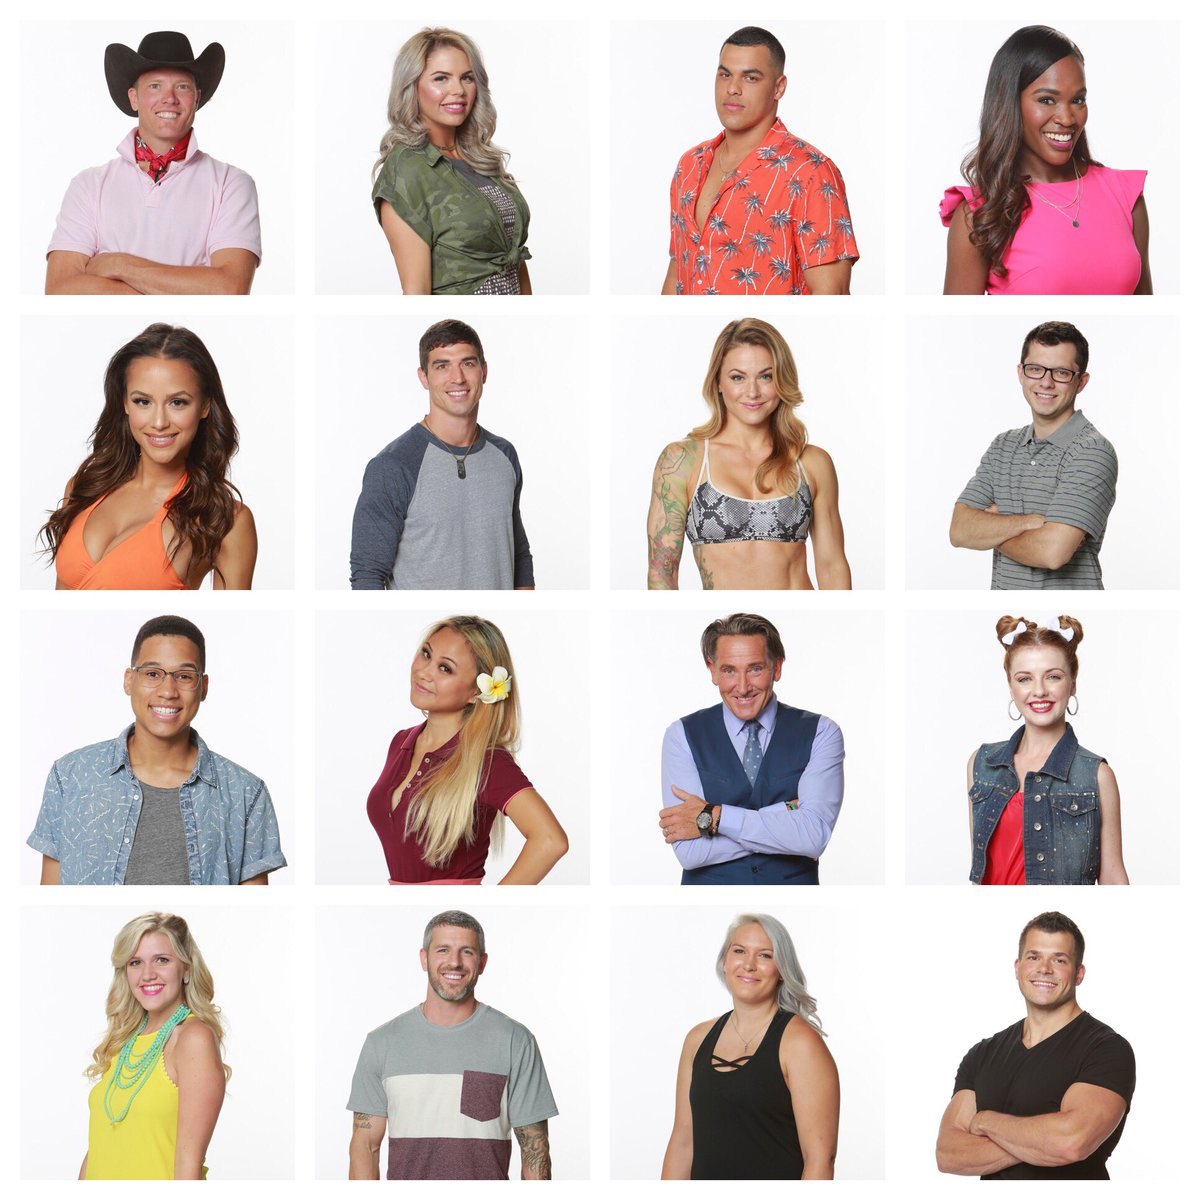 #BB19 👋🏼👋🏼 https://t.co/nm8Al14rmy